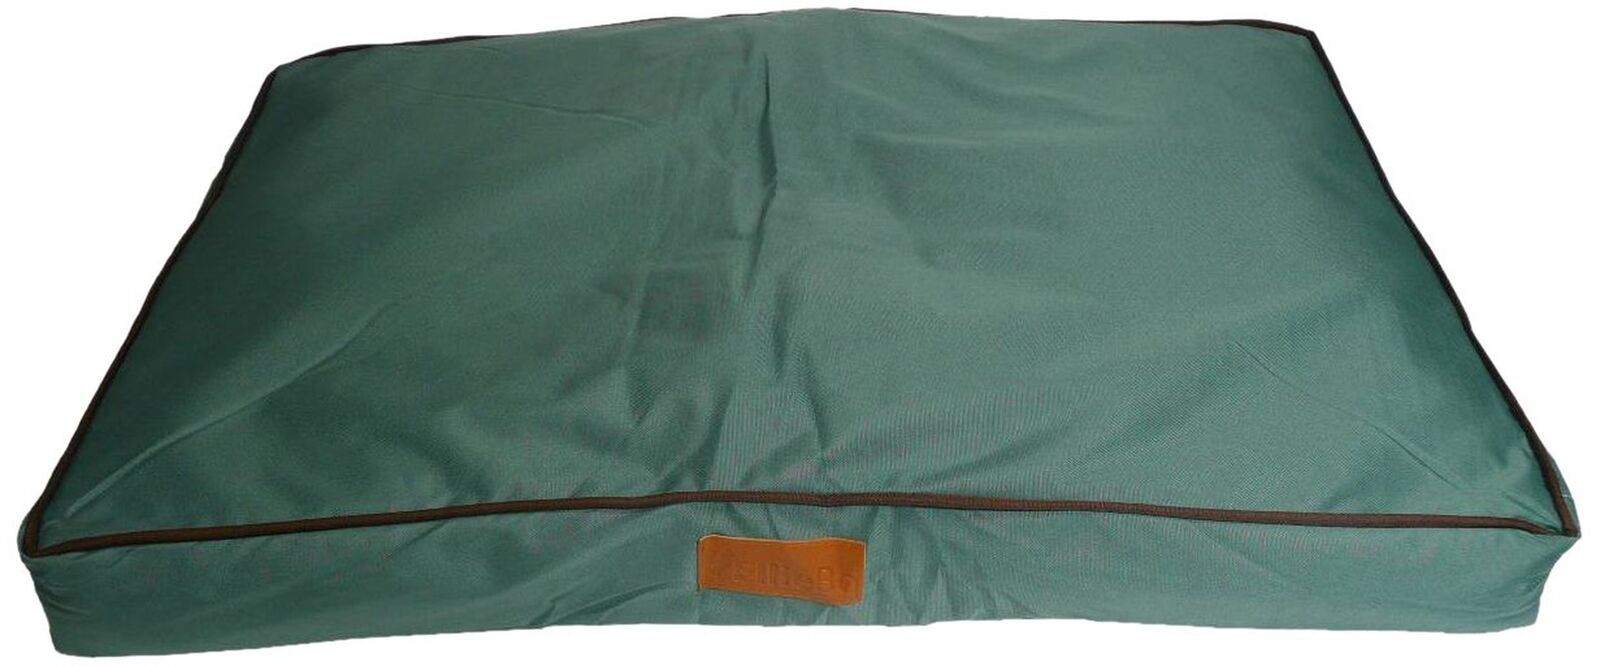 Extra Extra Large 117cms x 75cms Waterproof Dog Bed in Green will fit Ellie-B...